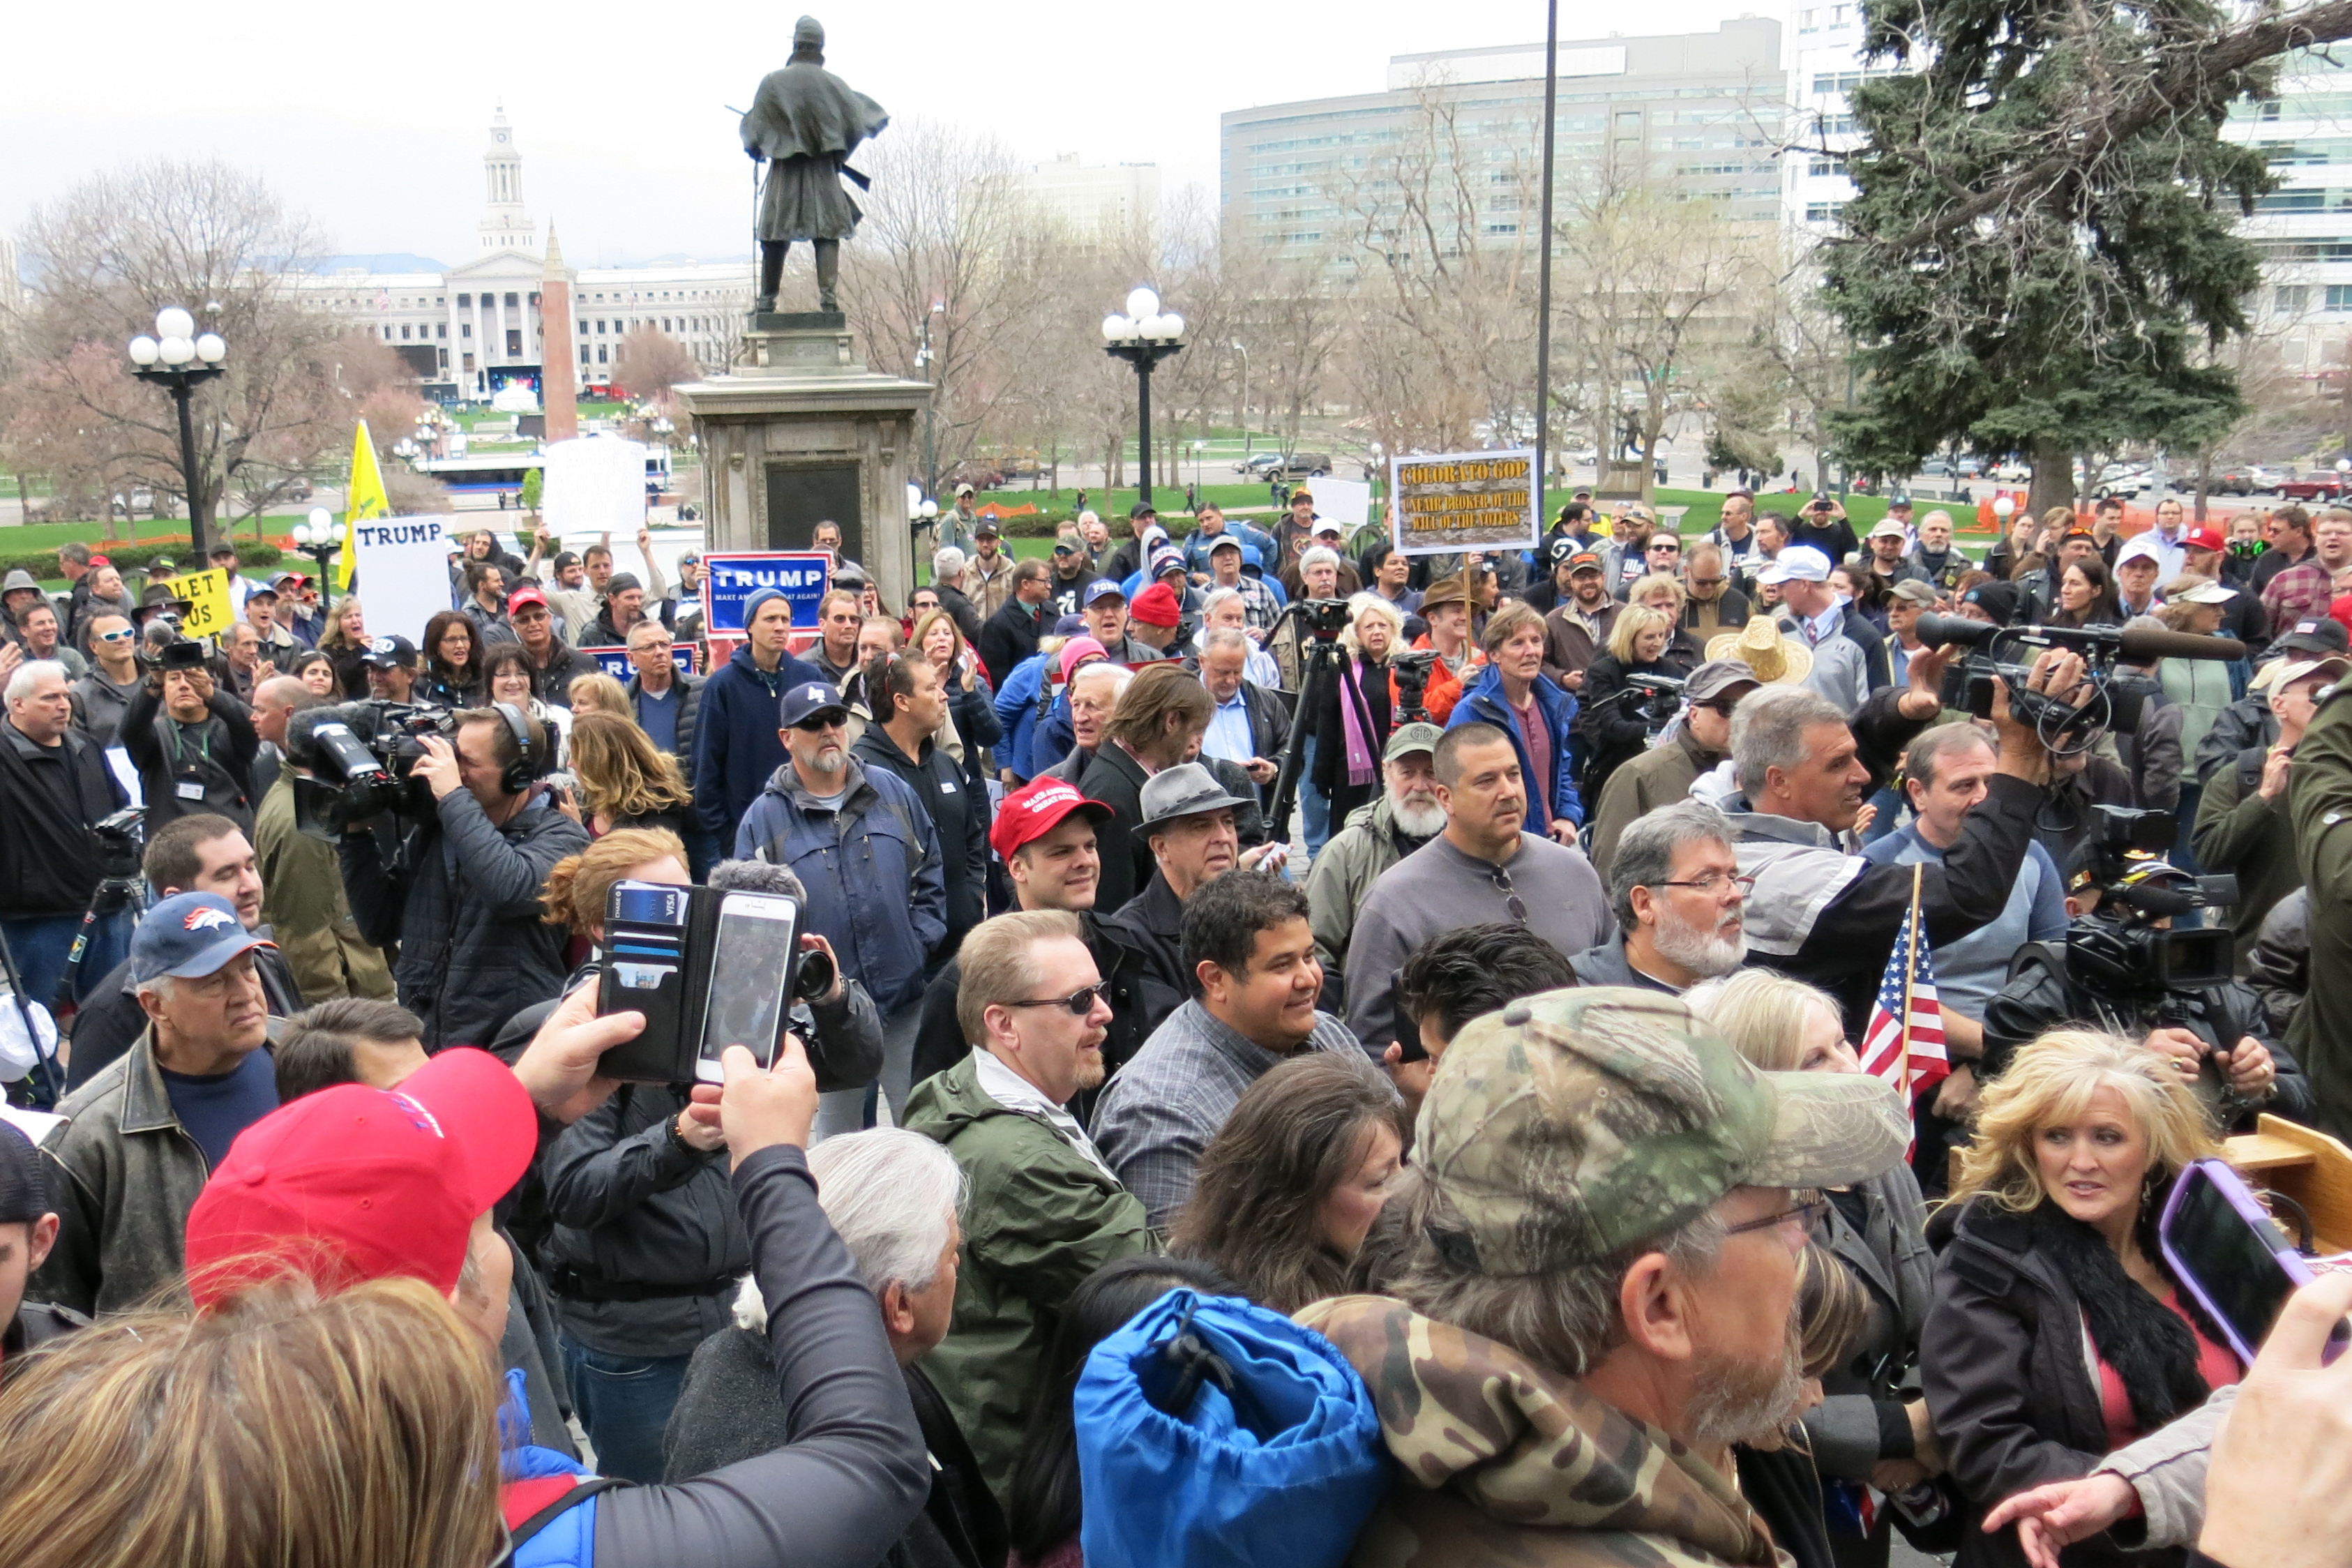 Photo: Trump supporters rally in Denver April 15, 2016.